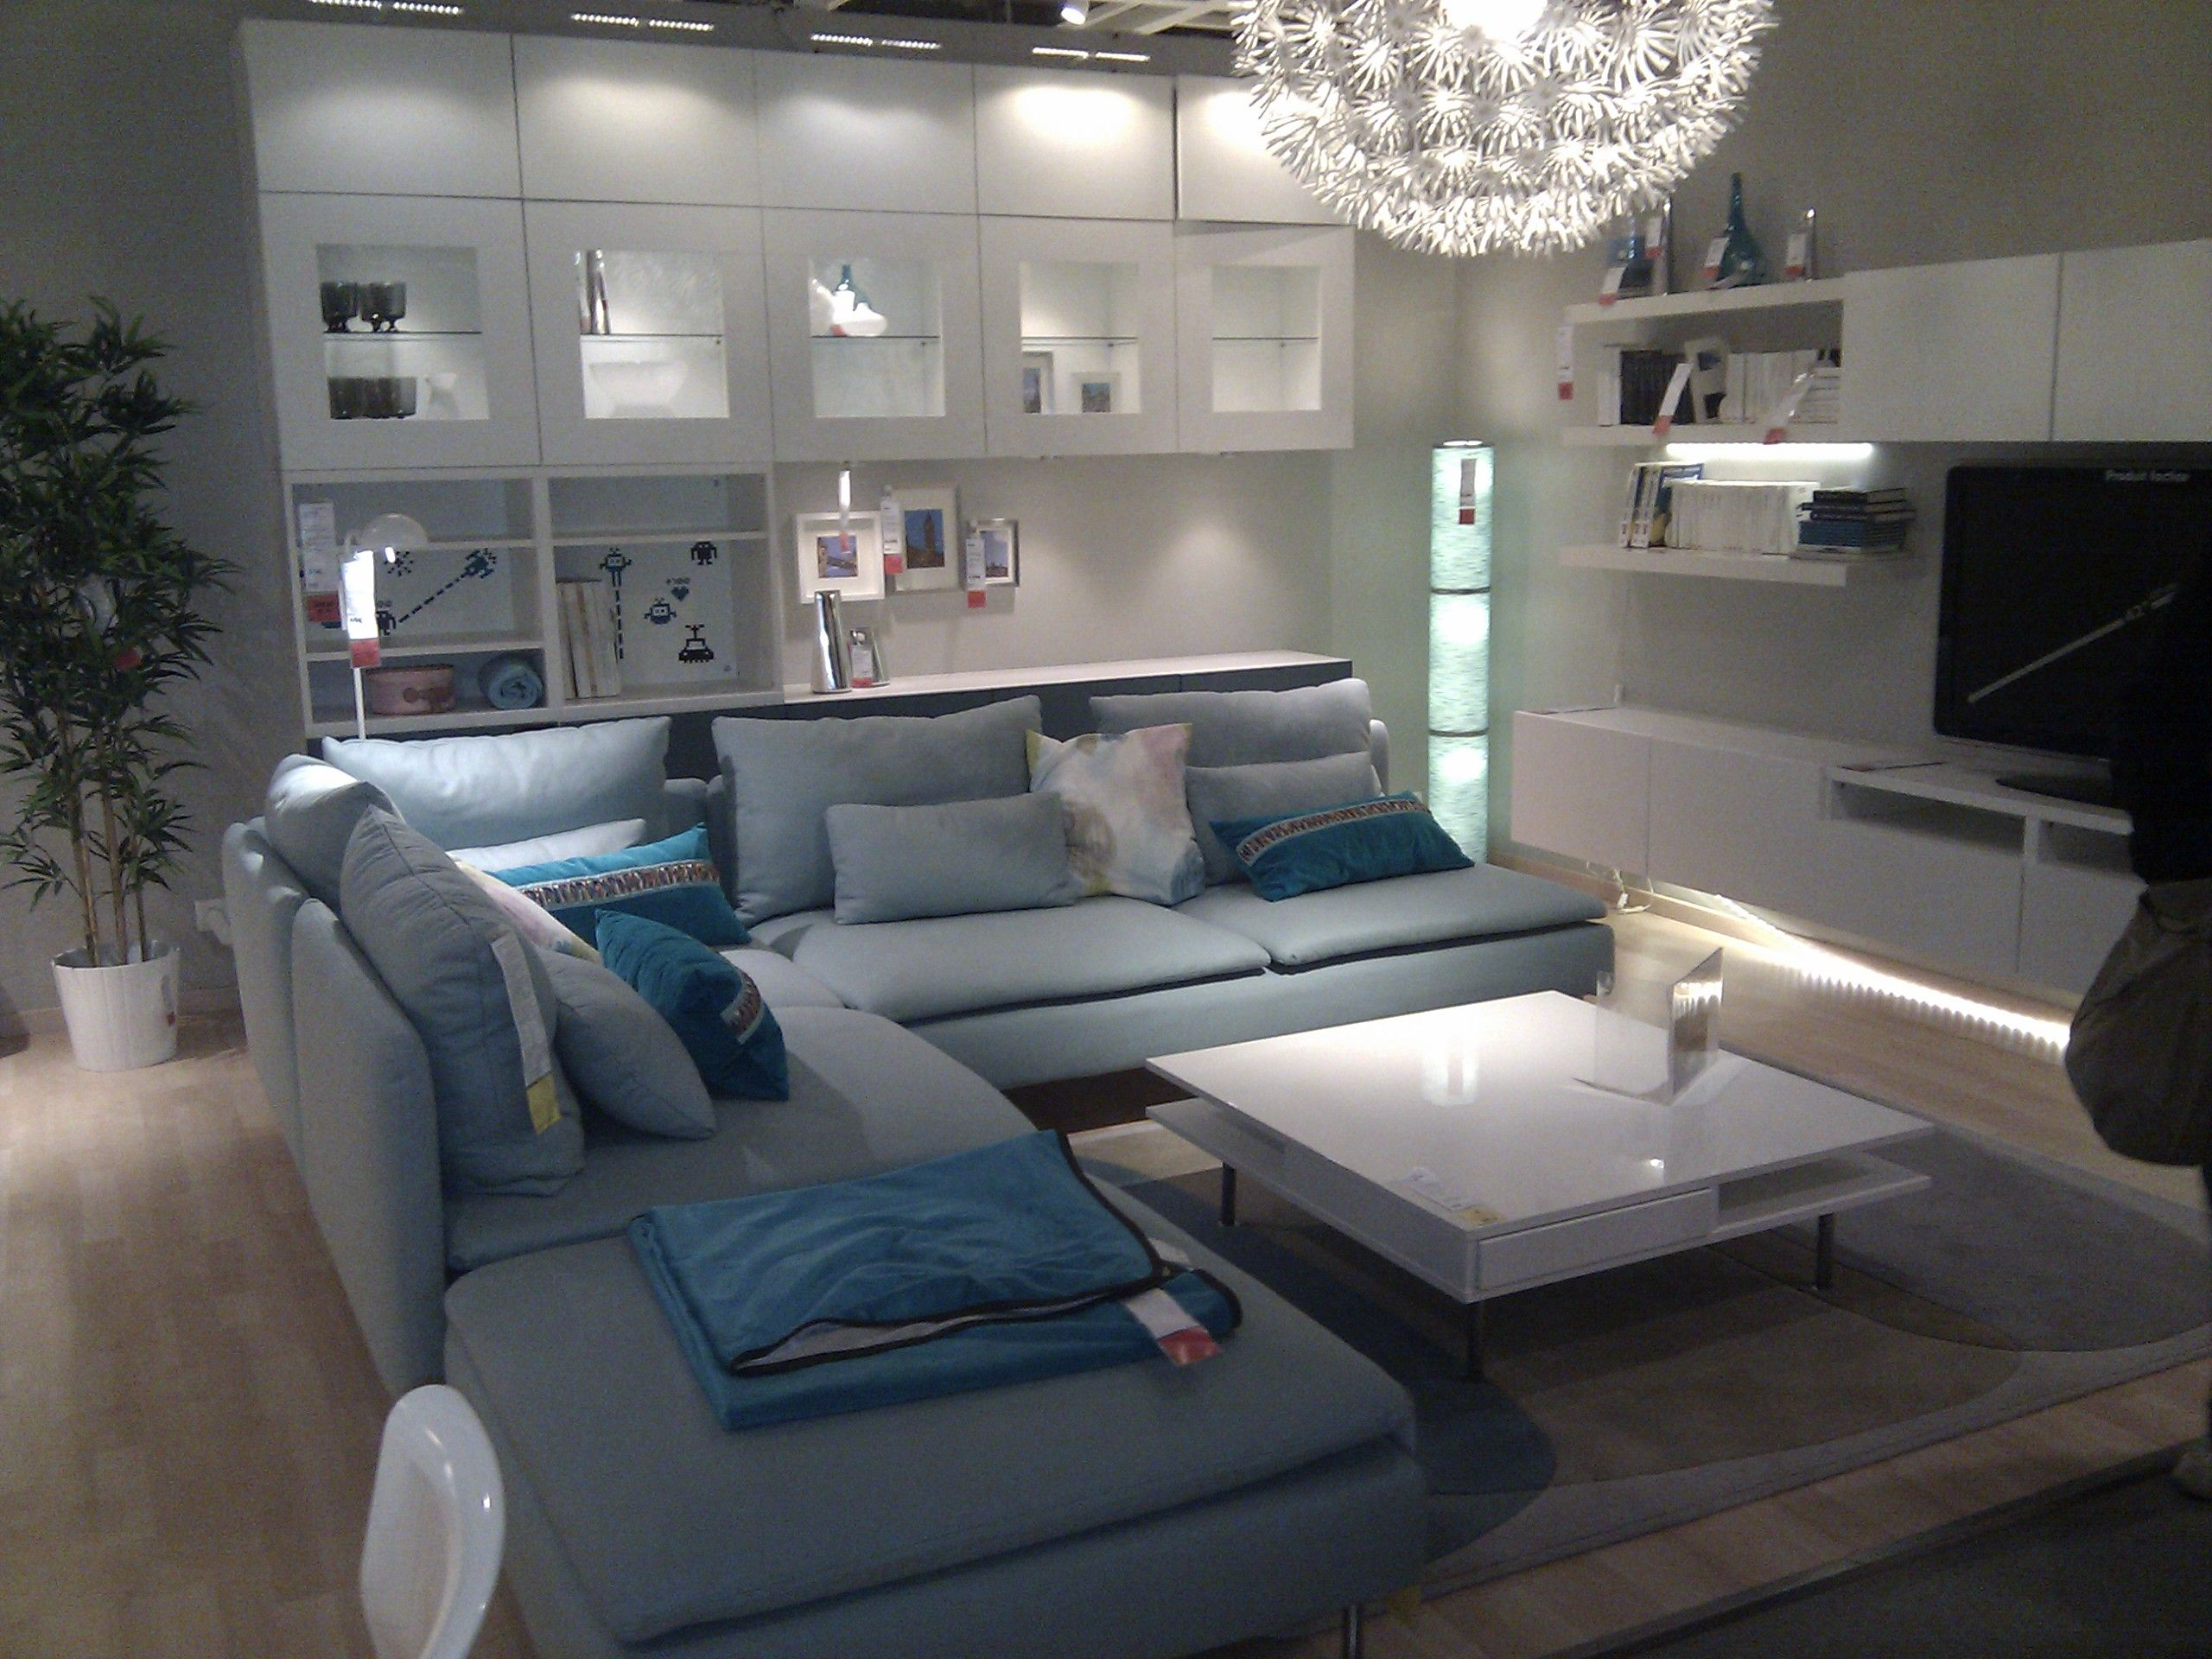 Coin salon ikea tourville la rivi re casa pinterest - Ikea momento salon ...